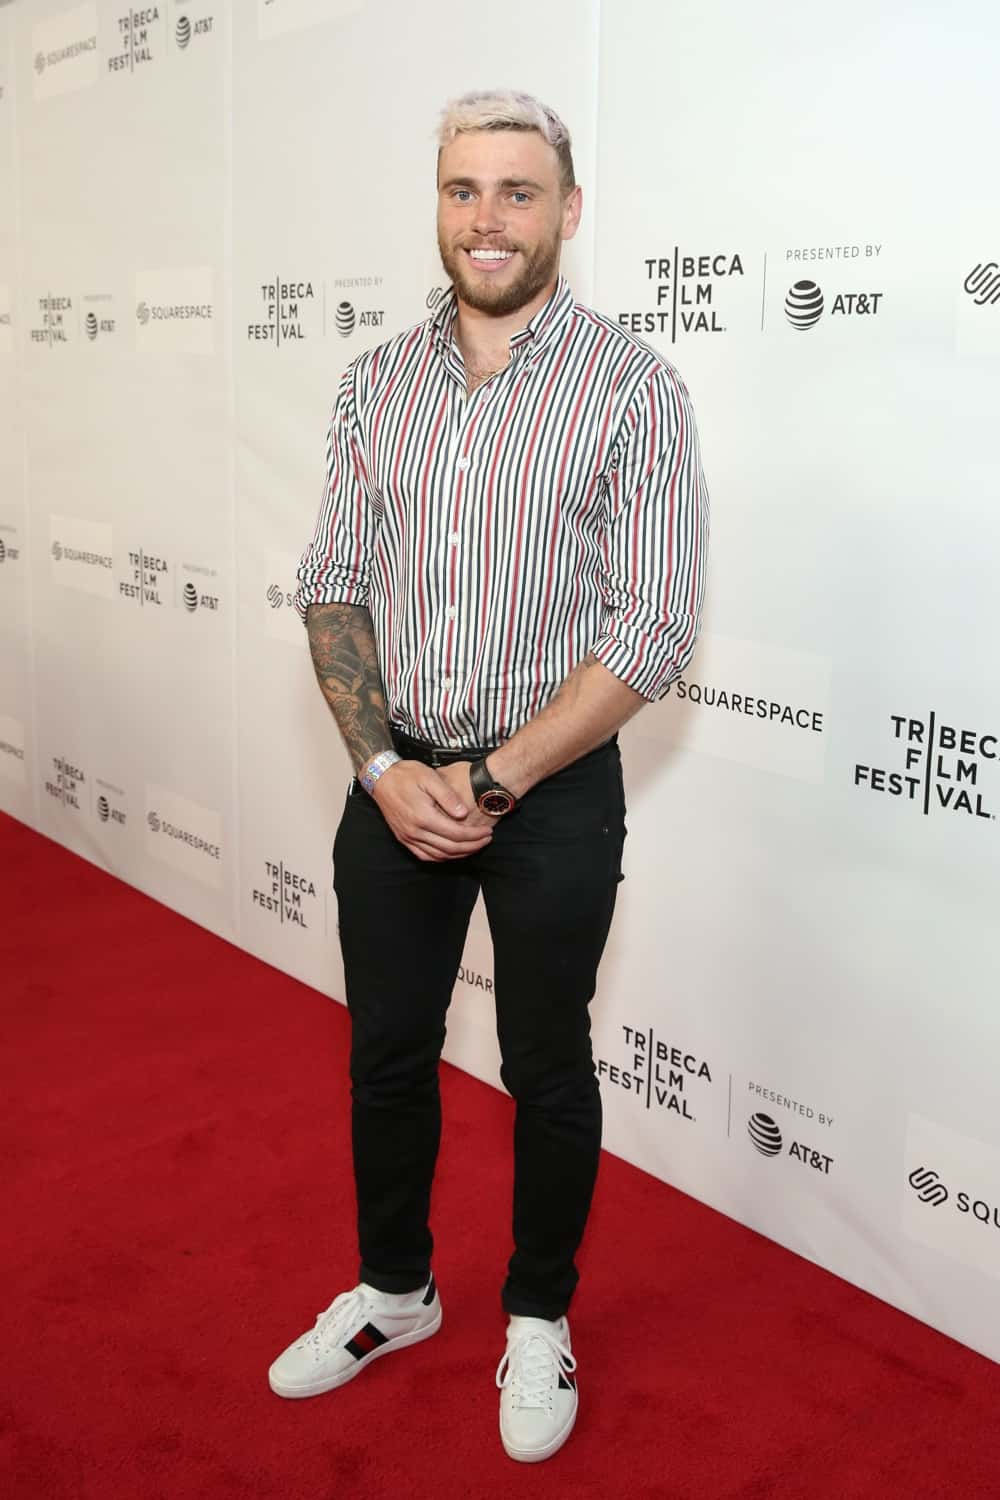 Gus Kenworthy World Premiere Of 'GAY CHORUS DEEP SOUTH' Documentary, Developed And Produced By Airbnb At The 2019 Tribeca Film Festival